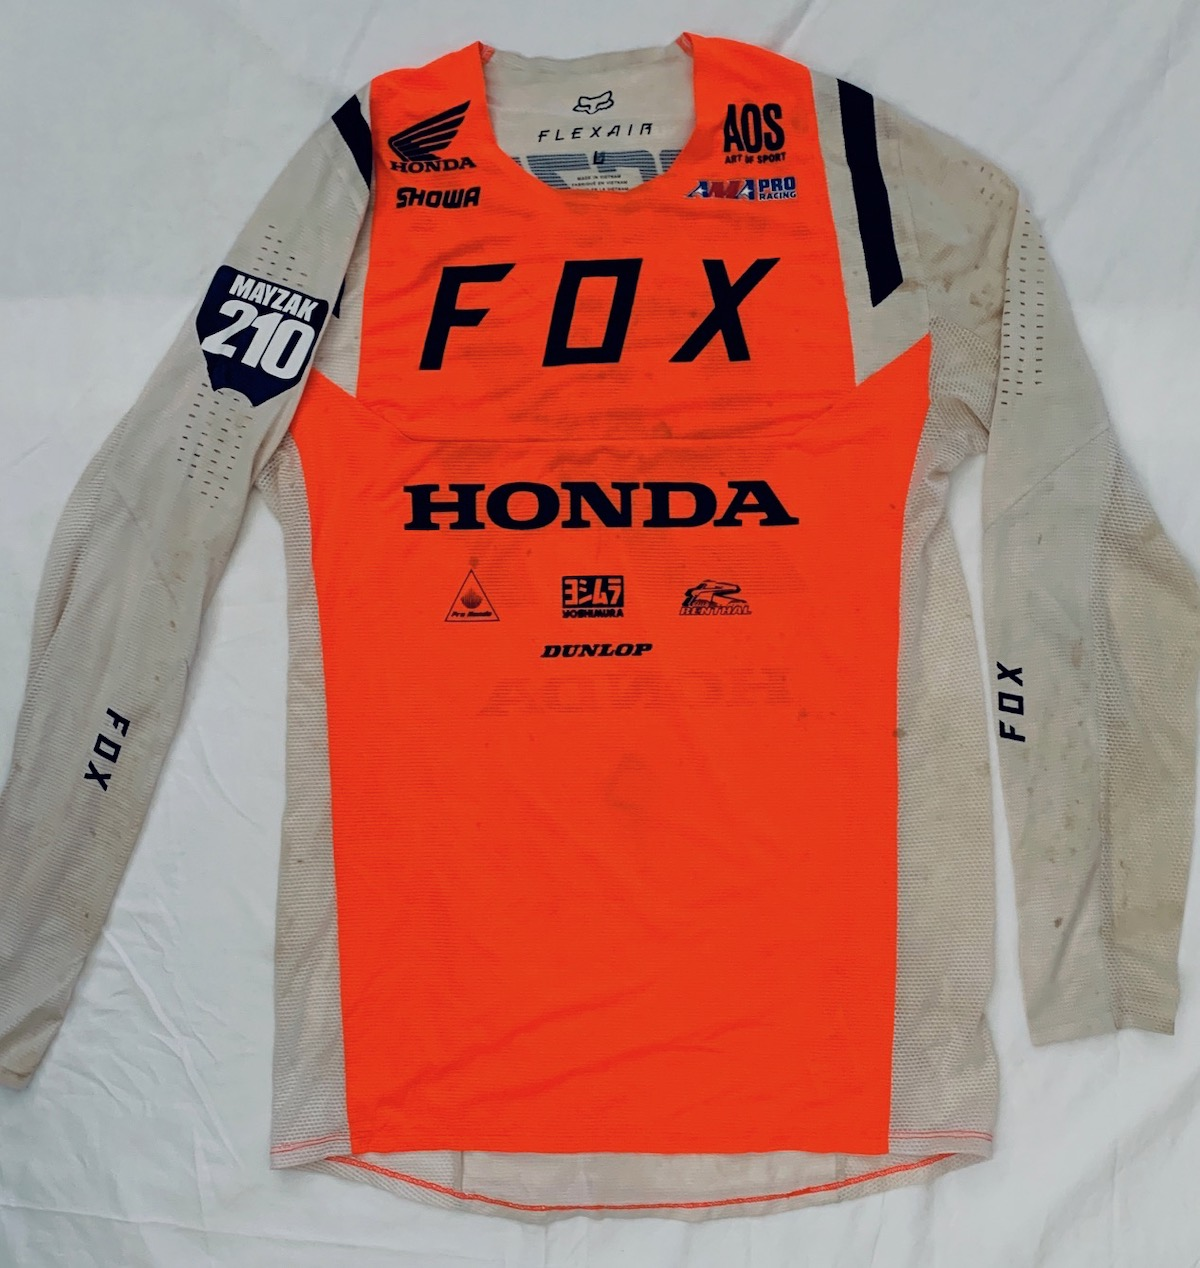 Road 2 Recovery Hosts Motocross Memorabilia Mania eBay Auction Featuring Lucas Oil Pro Motocross Championship [3]